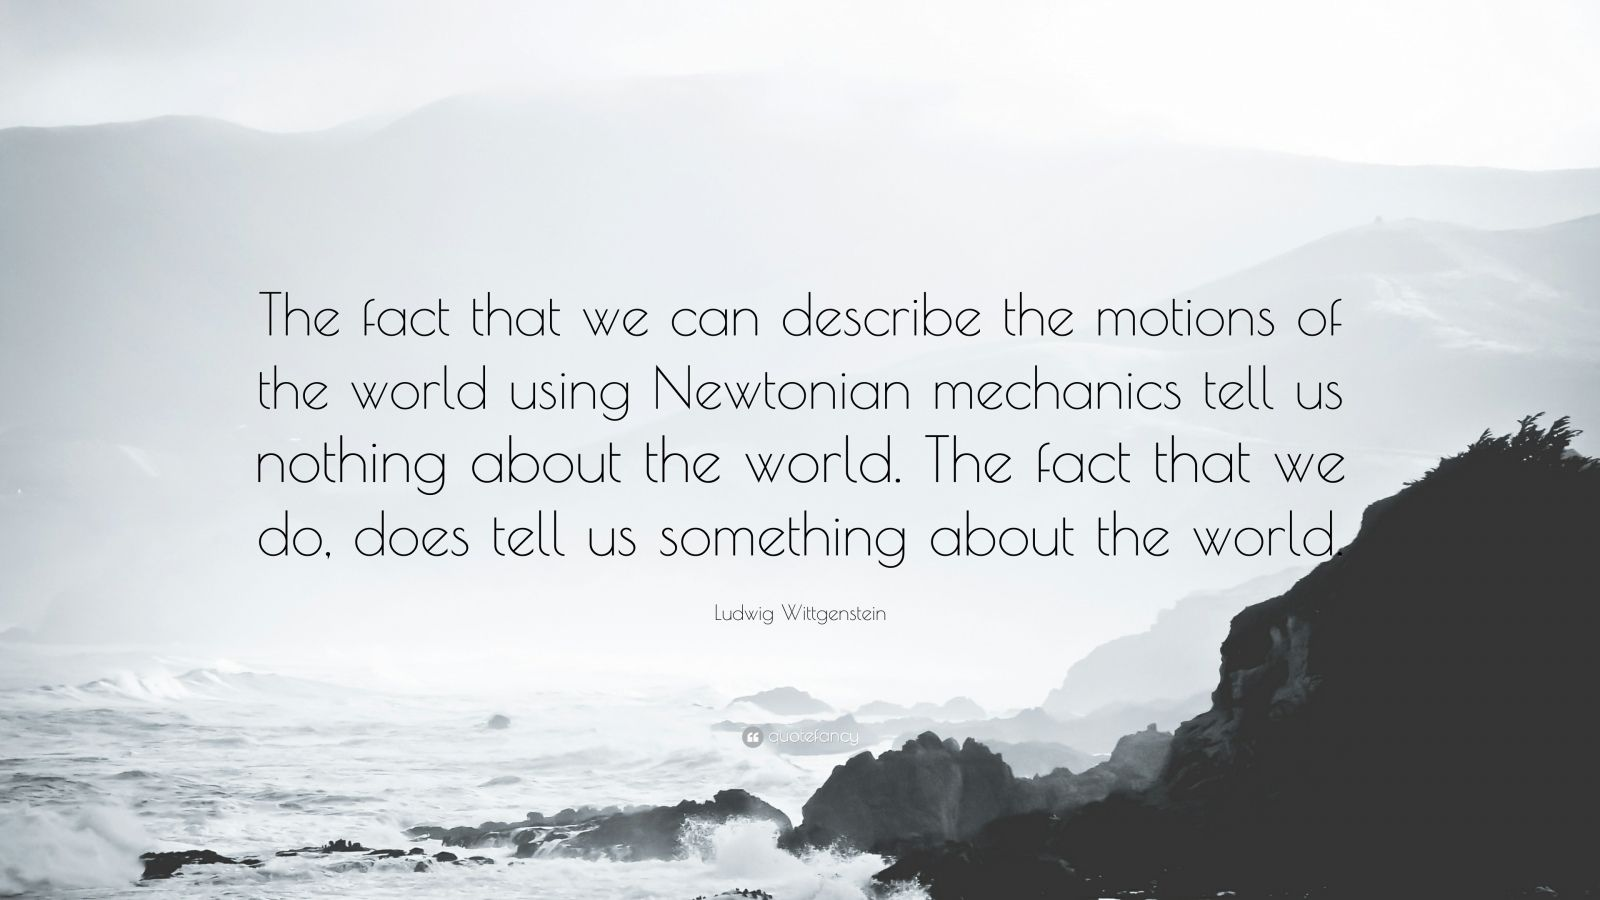 """Ludwig Wittgenstein Quote: """"The fact that we can describe the motions of the world using Newtonian mechanics tell us nothing about the world. The fact that we do, does tell us something about the world."""""""